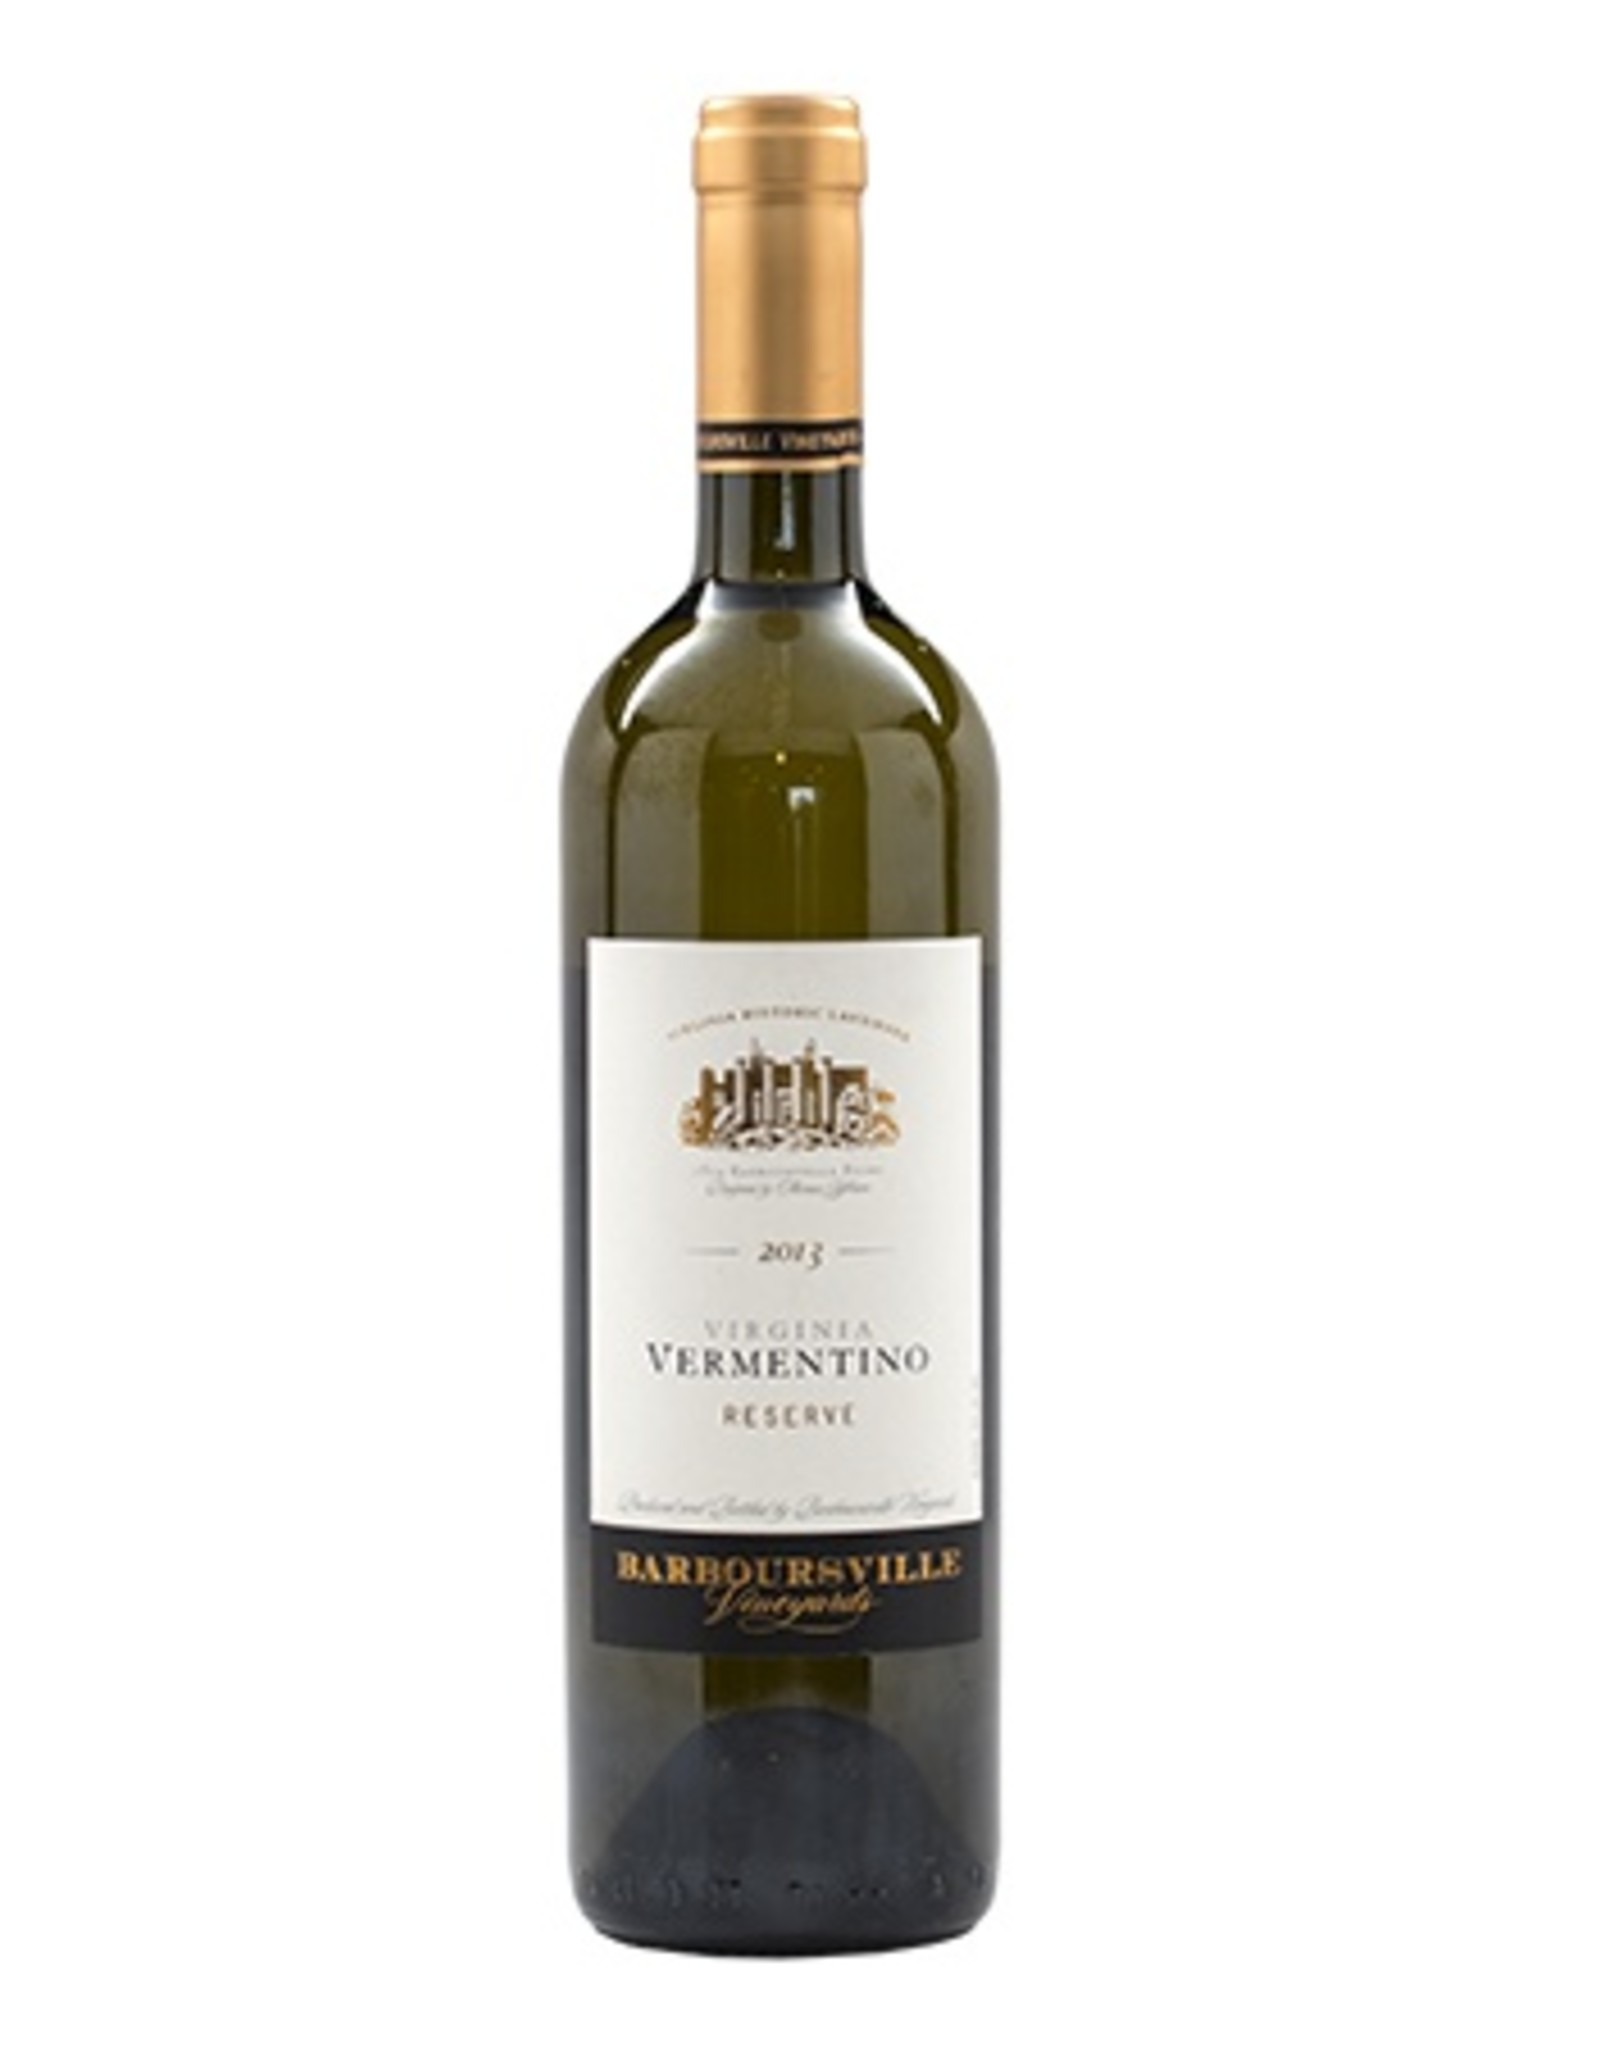 Barboursville Vermentino Reserve 2018